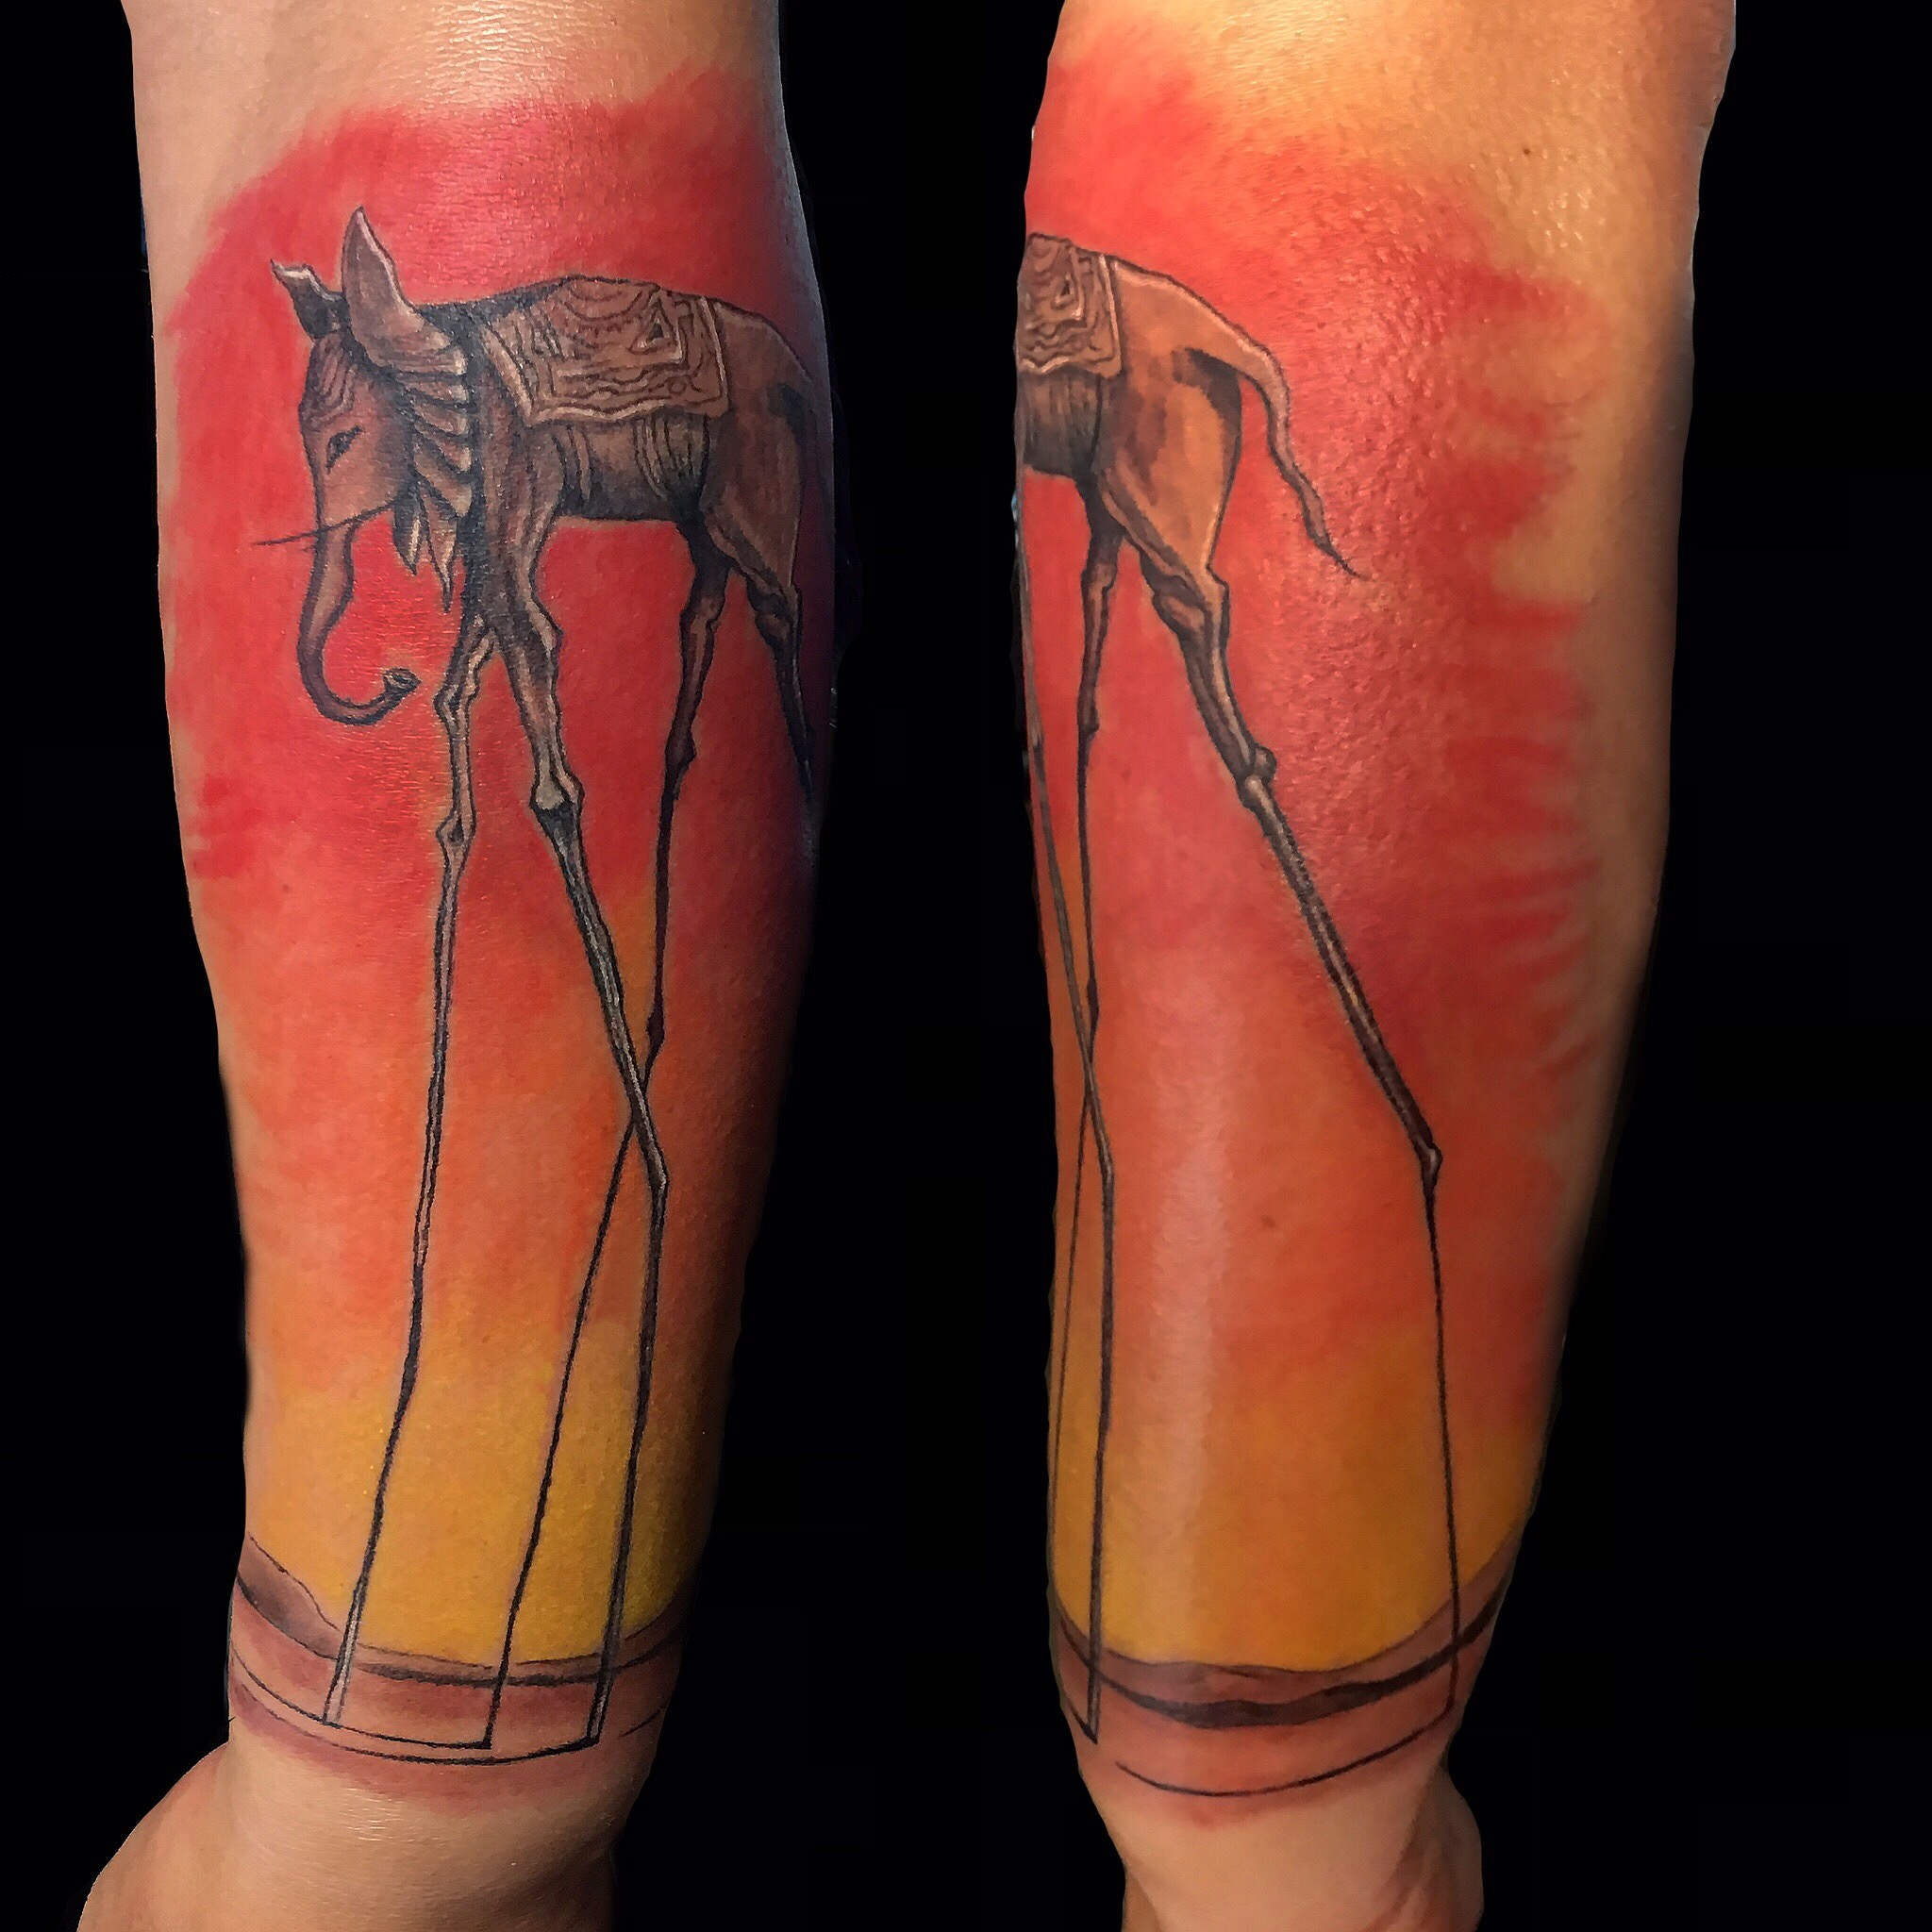 Salvador Dali's Elephant tattoo by Robin